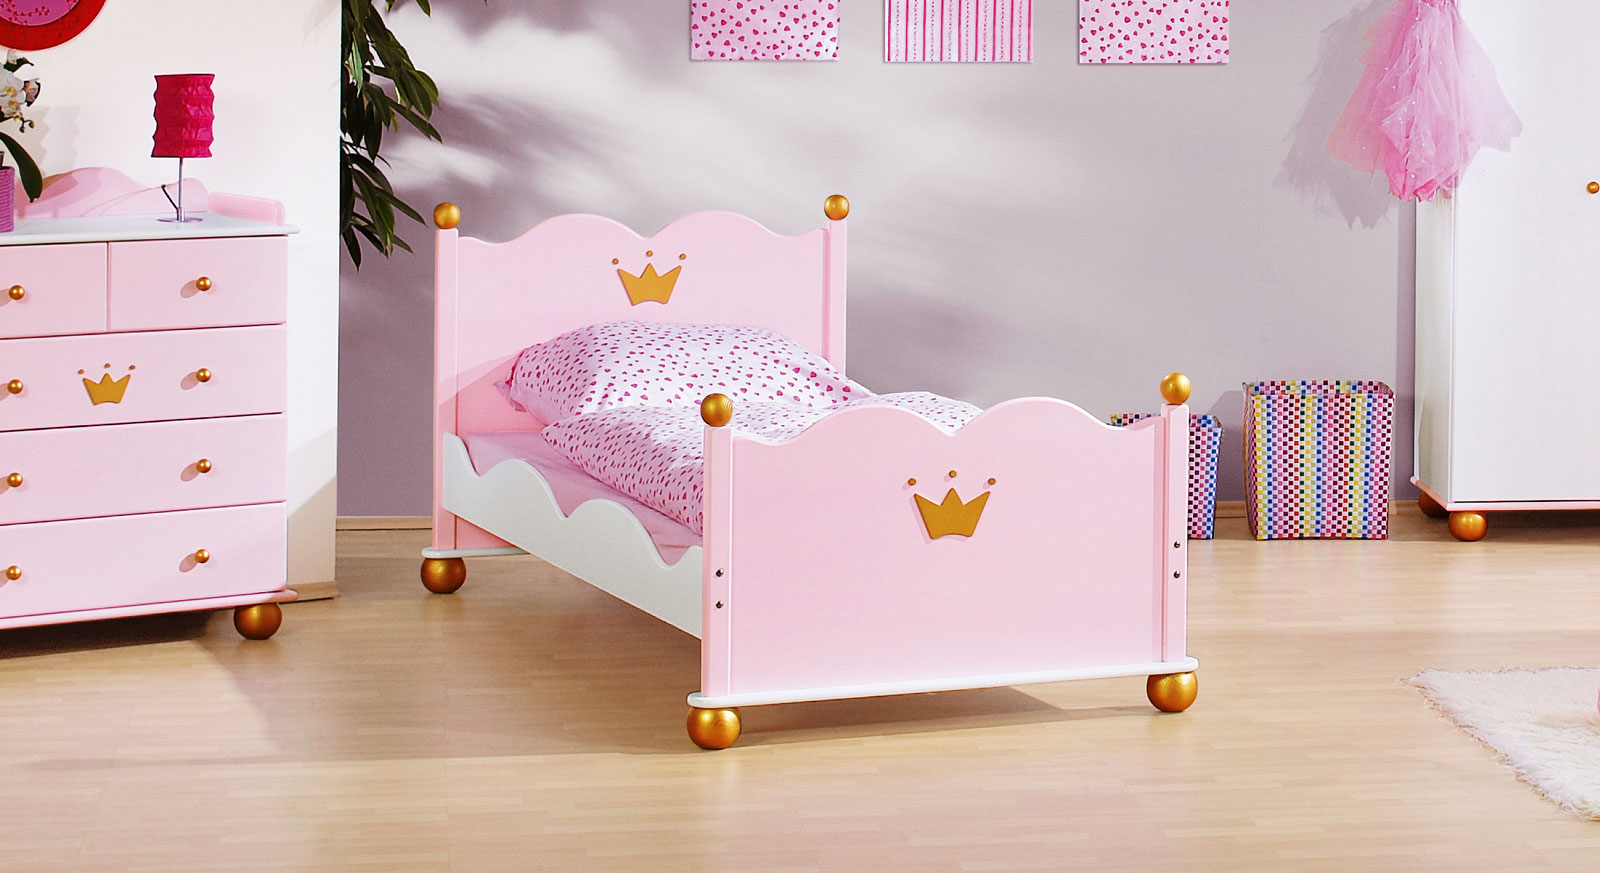 jugendbett mit goldenen verzierungen prinzessin karolin. Black Bedroom Furniture Sets. Home Design Ideas